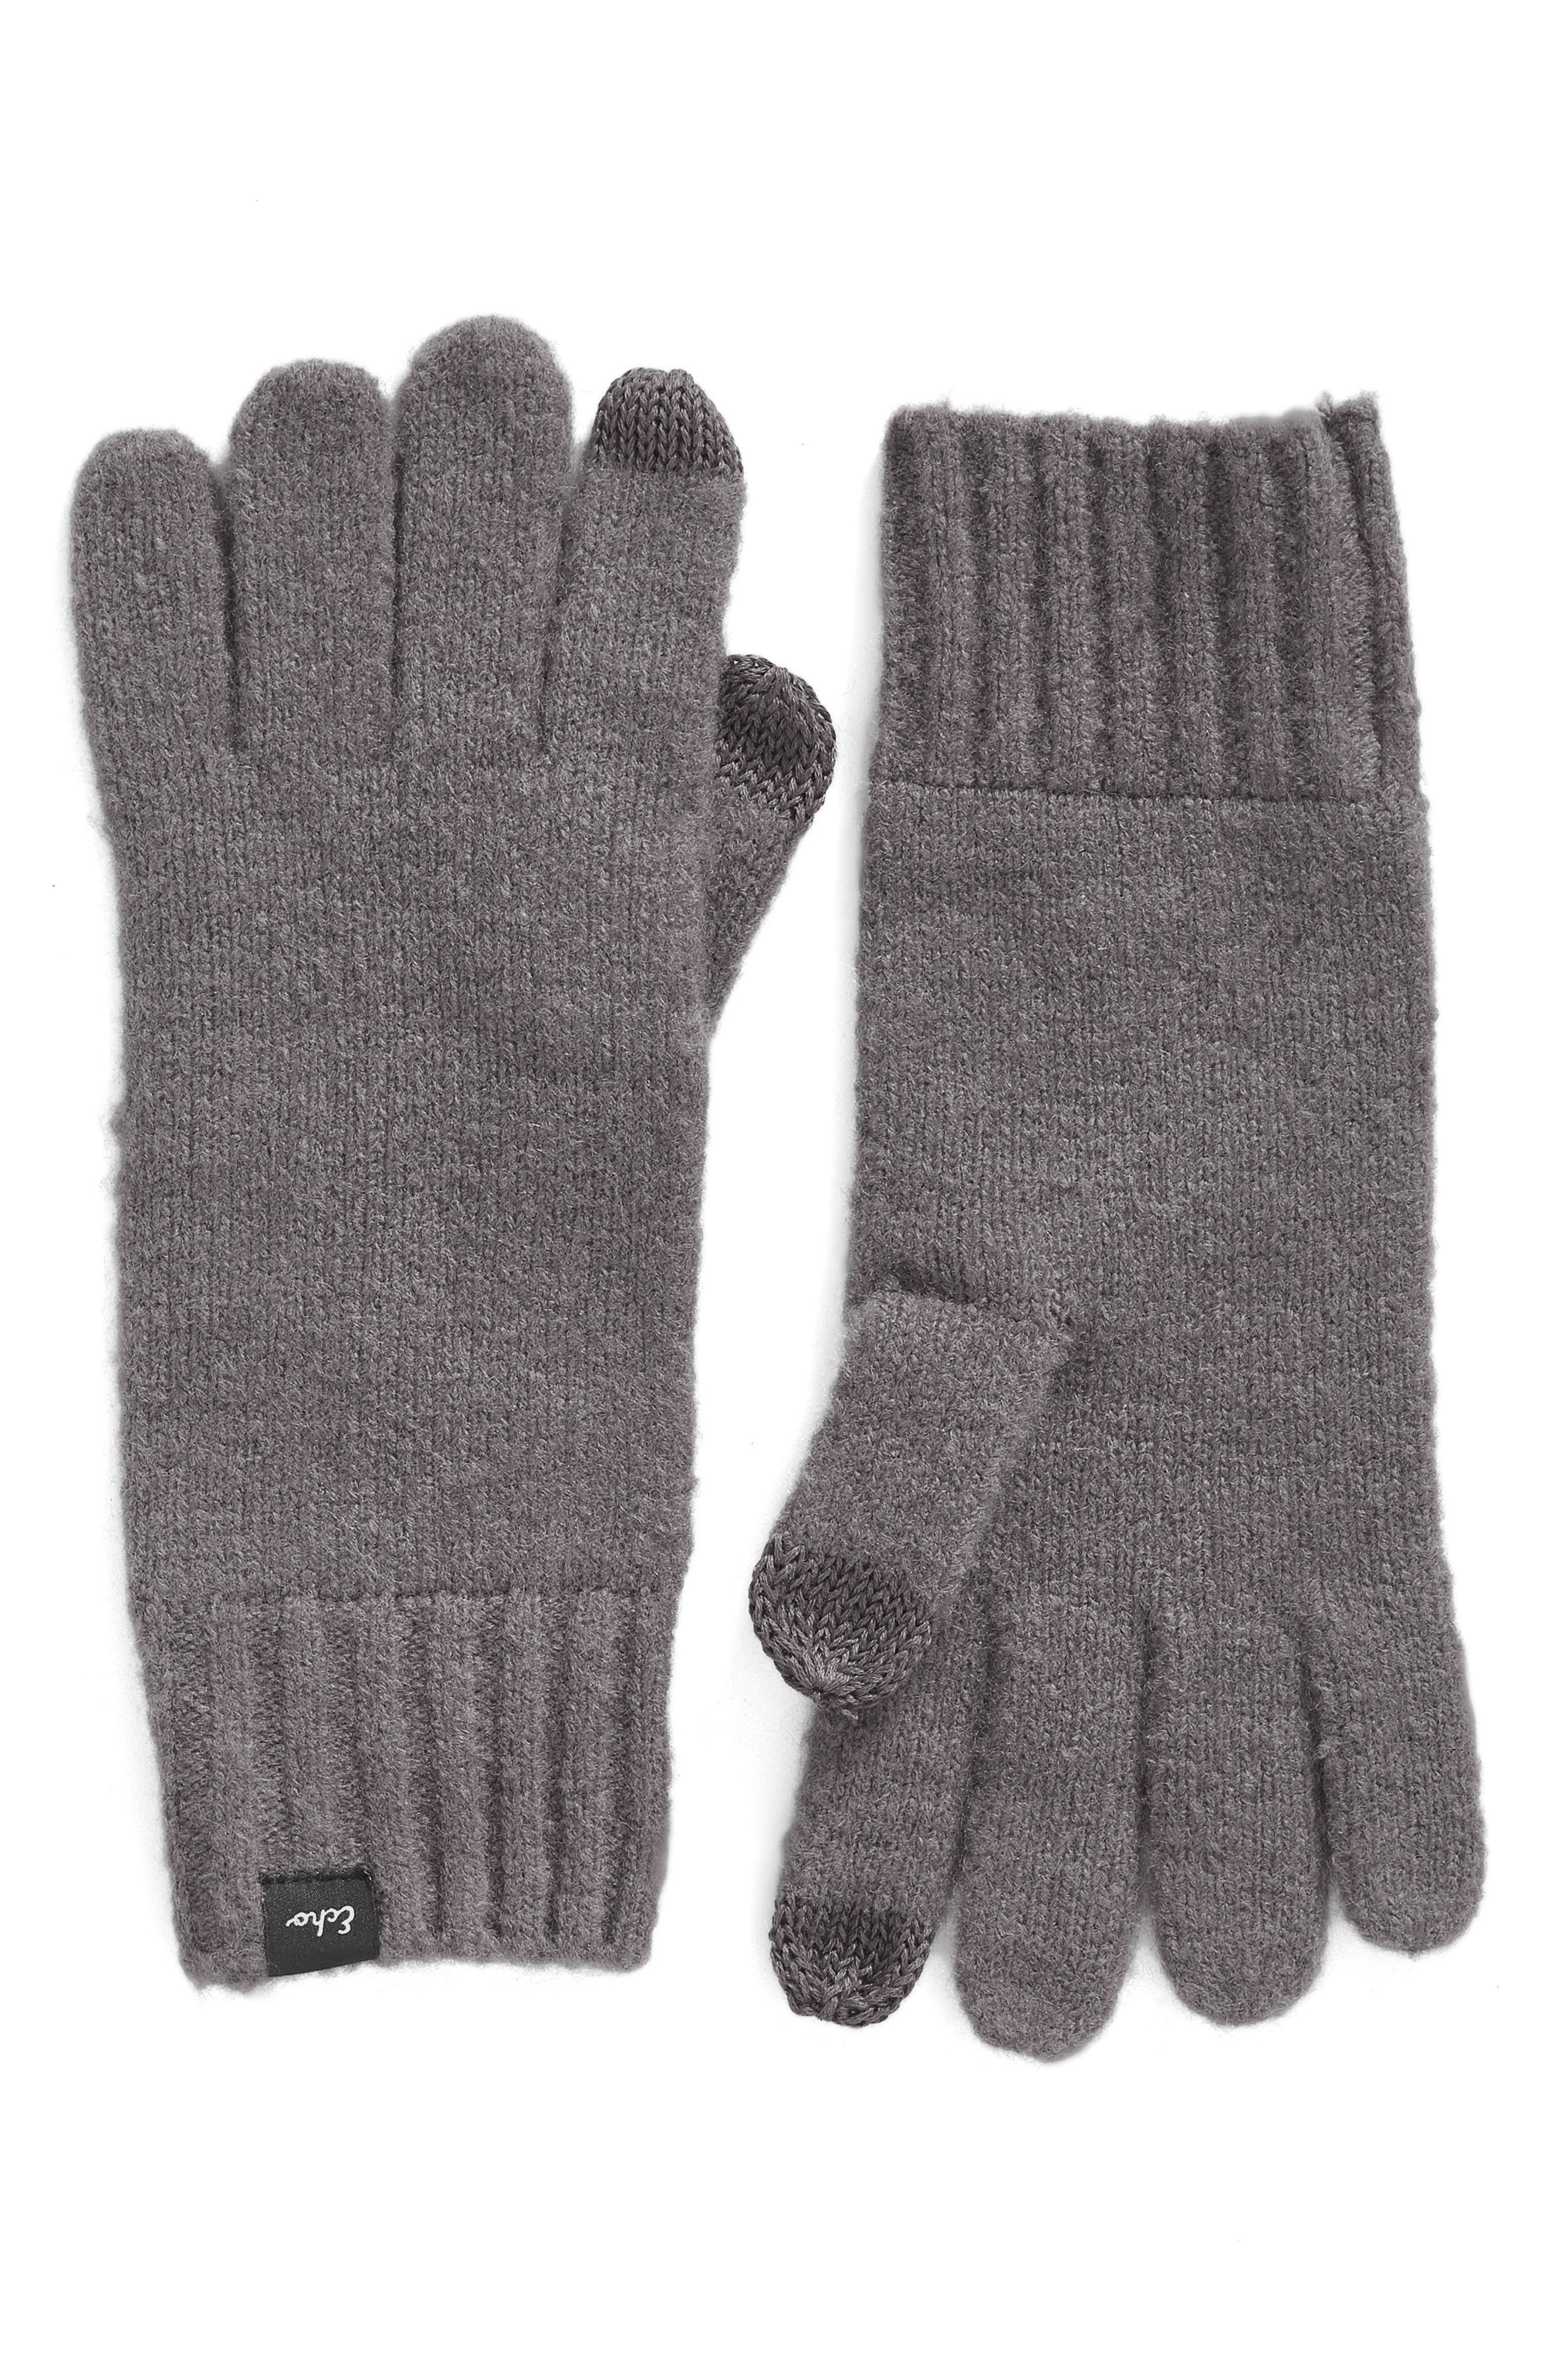 Main Image - Echo 'Touch' Stretch Fleece Tech Gloves